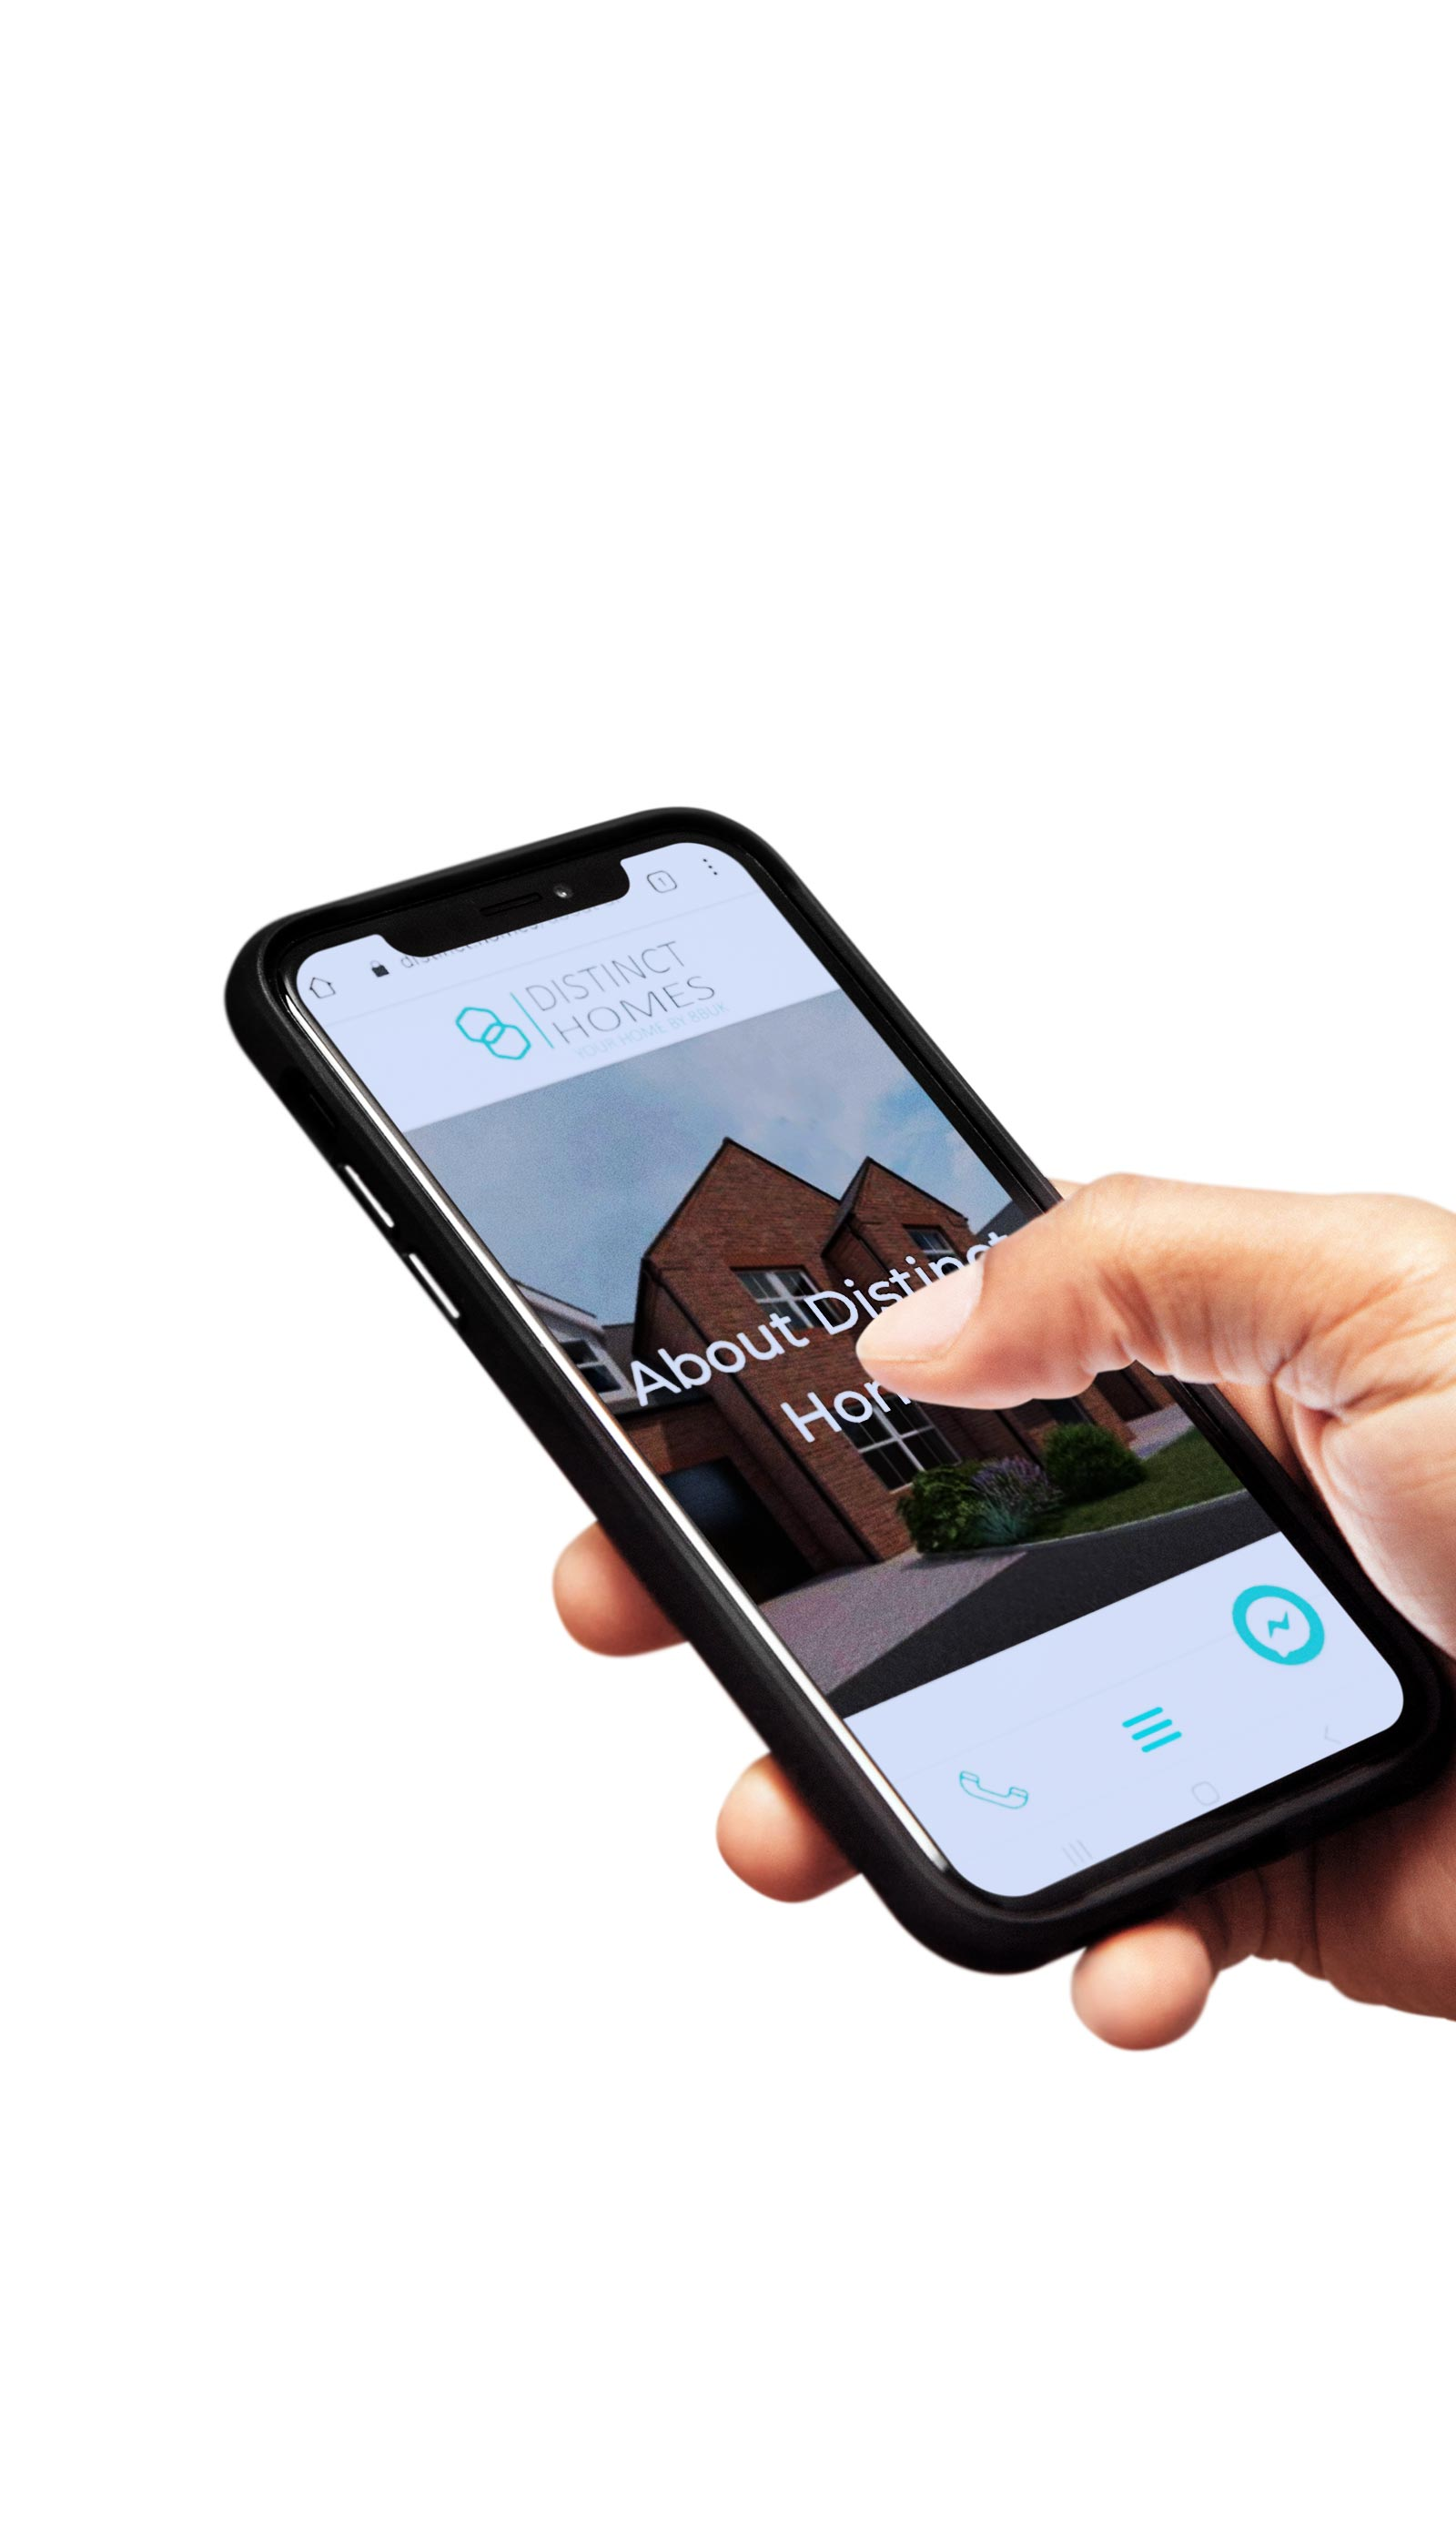 distinct homes mobile phone with their website design being held in a hand to show web designer